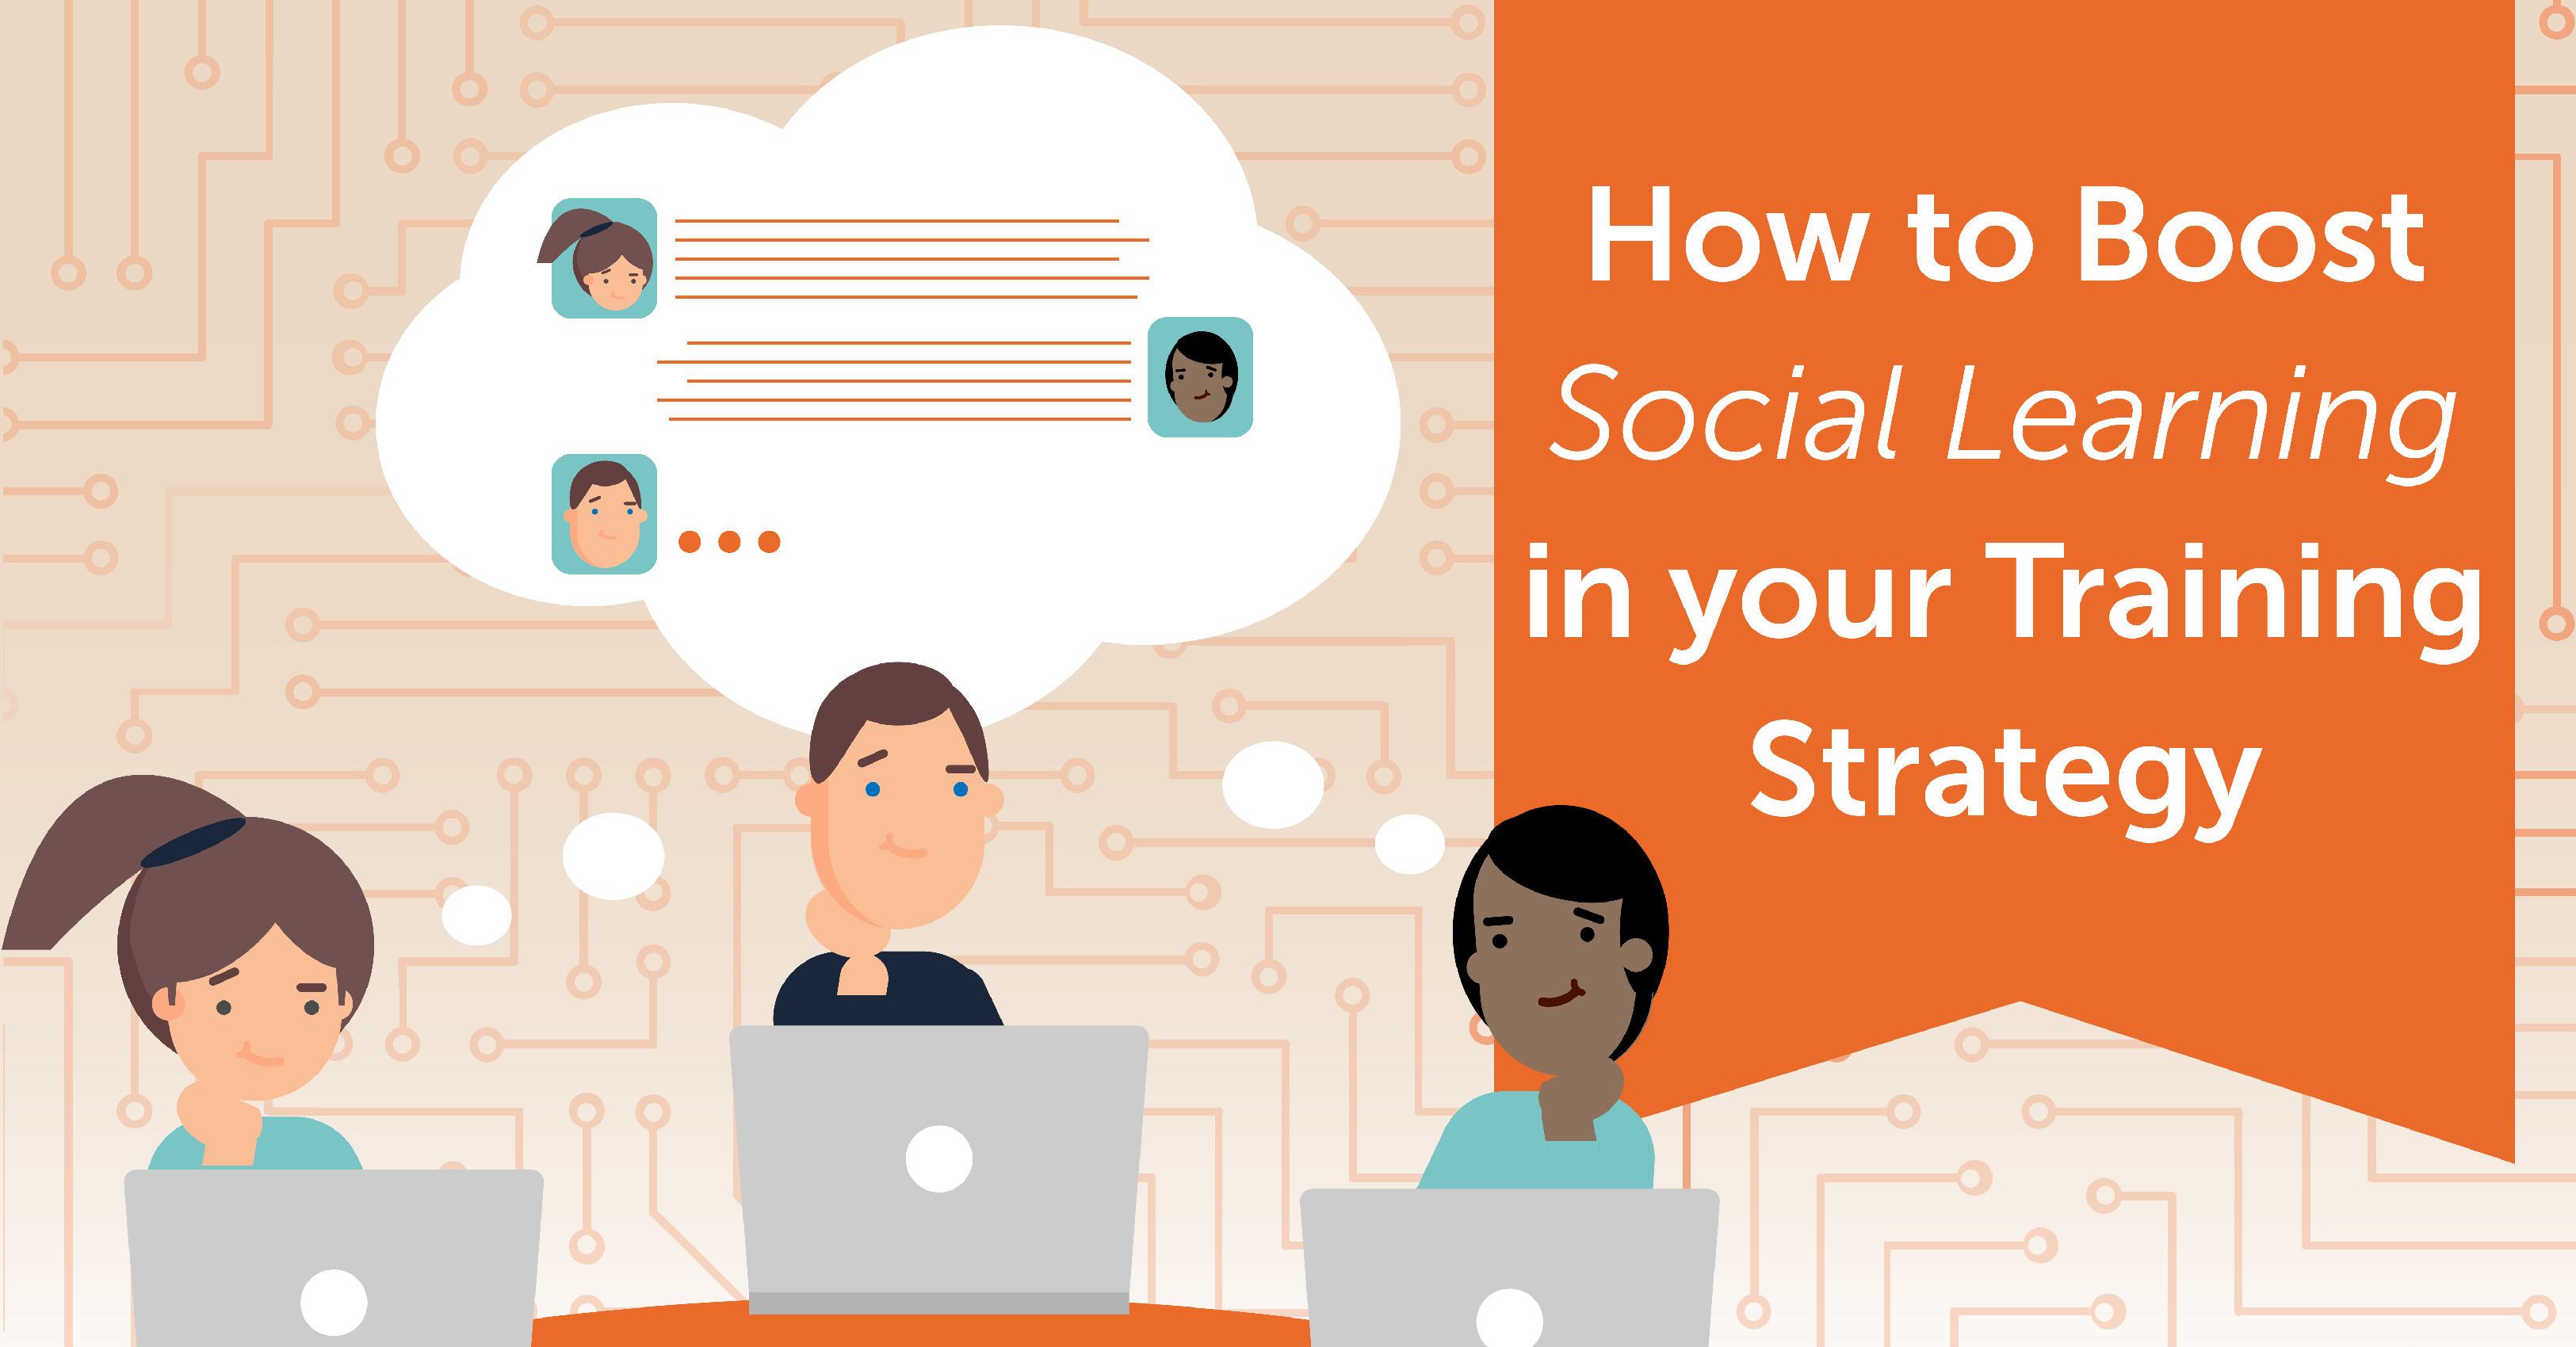 How To Boost Social Learning In Your Training Strategy